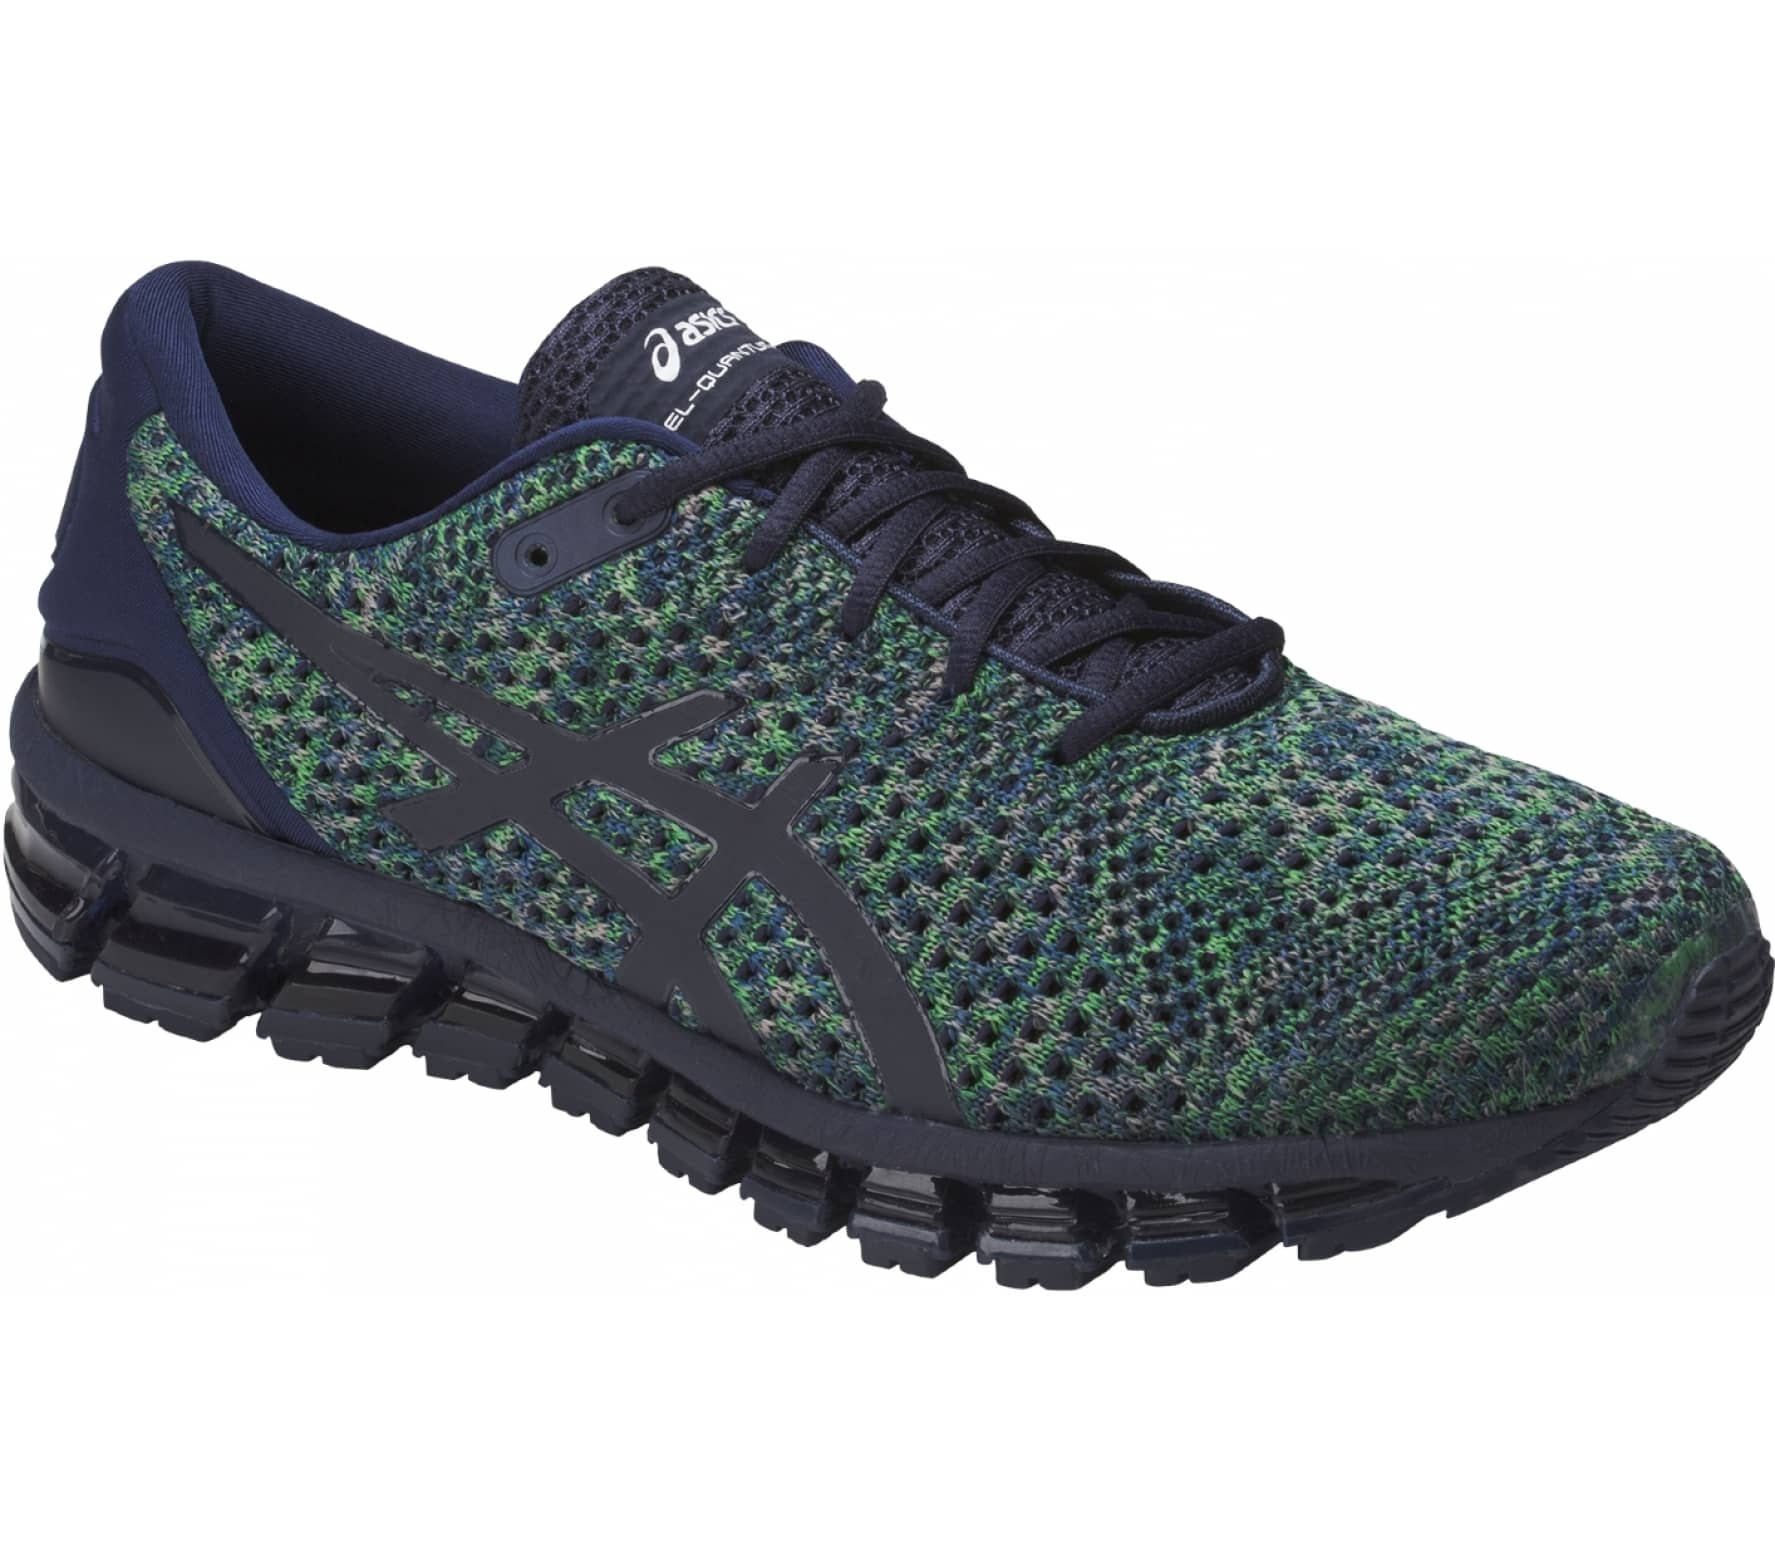 ASICS - GEL-Quantum 360 Knit 2 men s running shoes (dark blue green ... e02a5f3b38